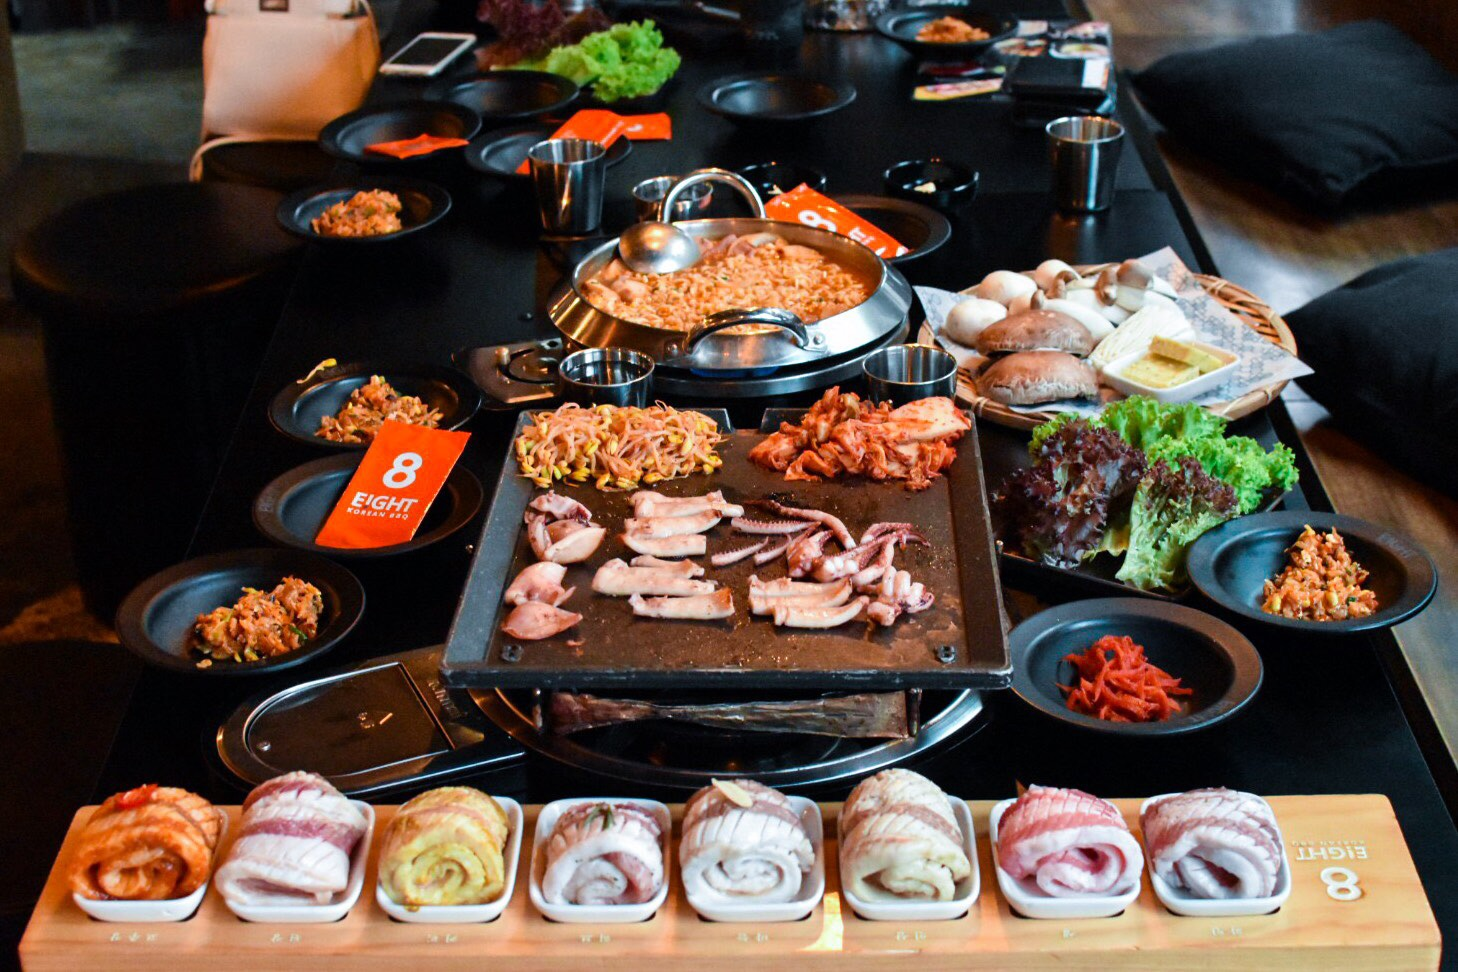 Review: 8 E!GHT KOREAN BBQ @ Clarke Quay – Explodingbelly